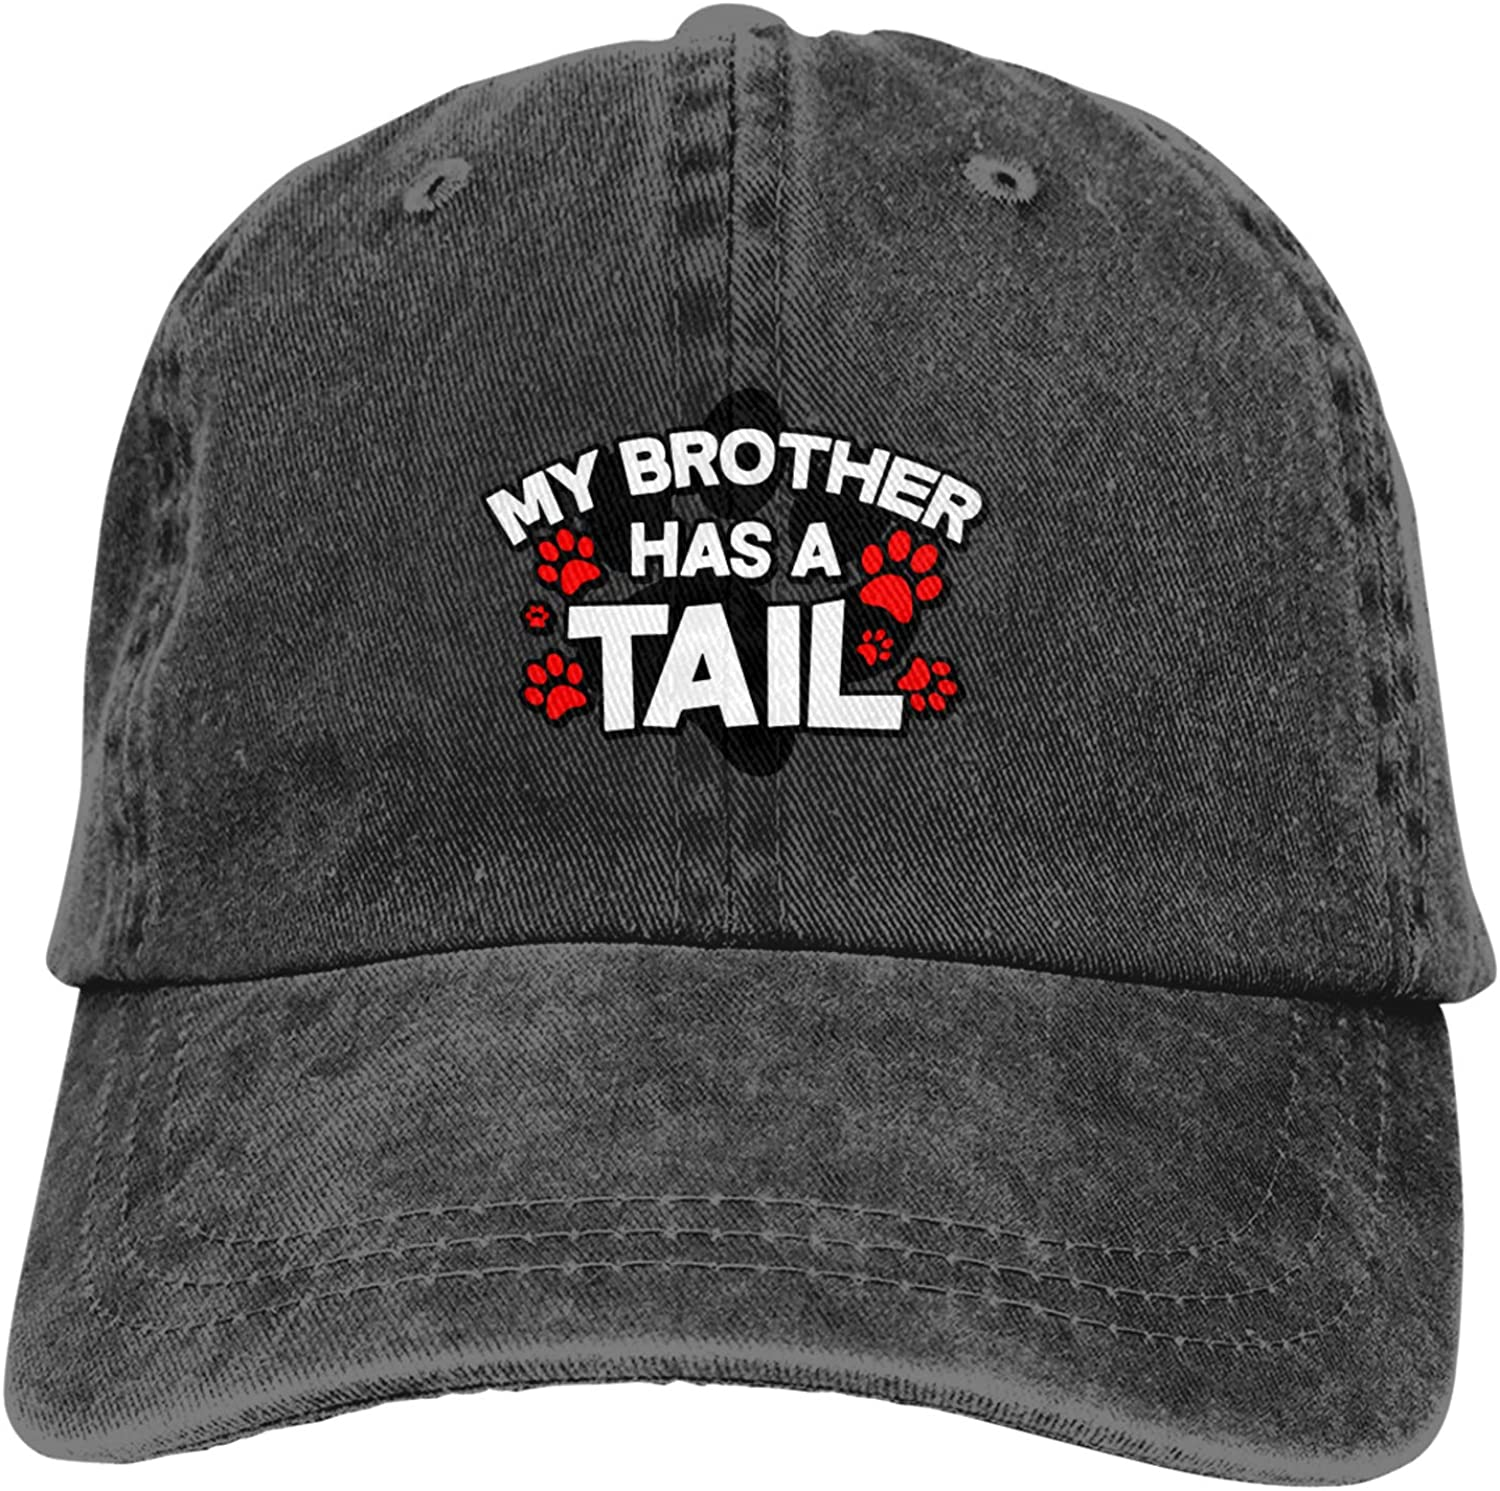 My Brother Has A Tail Unisex Adjustable Cowboy Hat Adult Cotton Baseball Cap